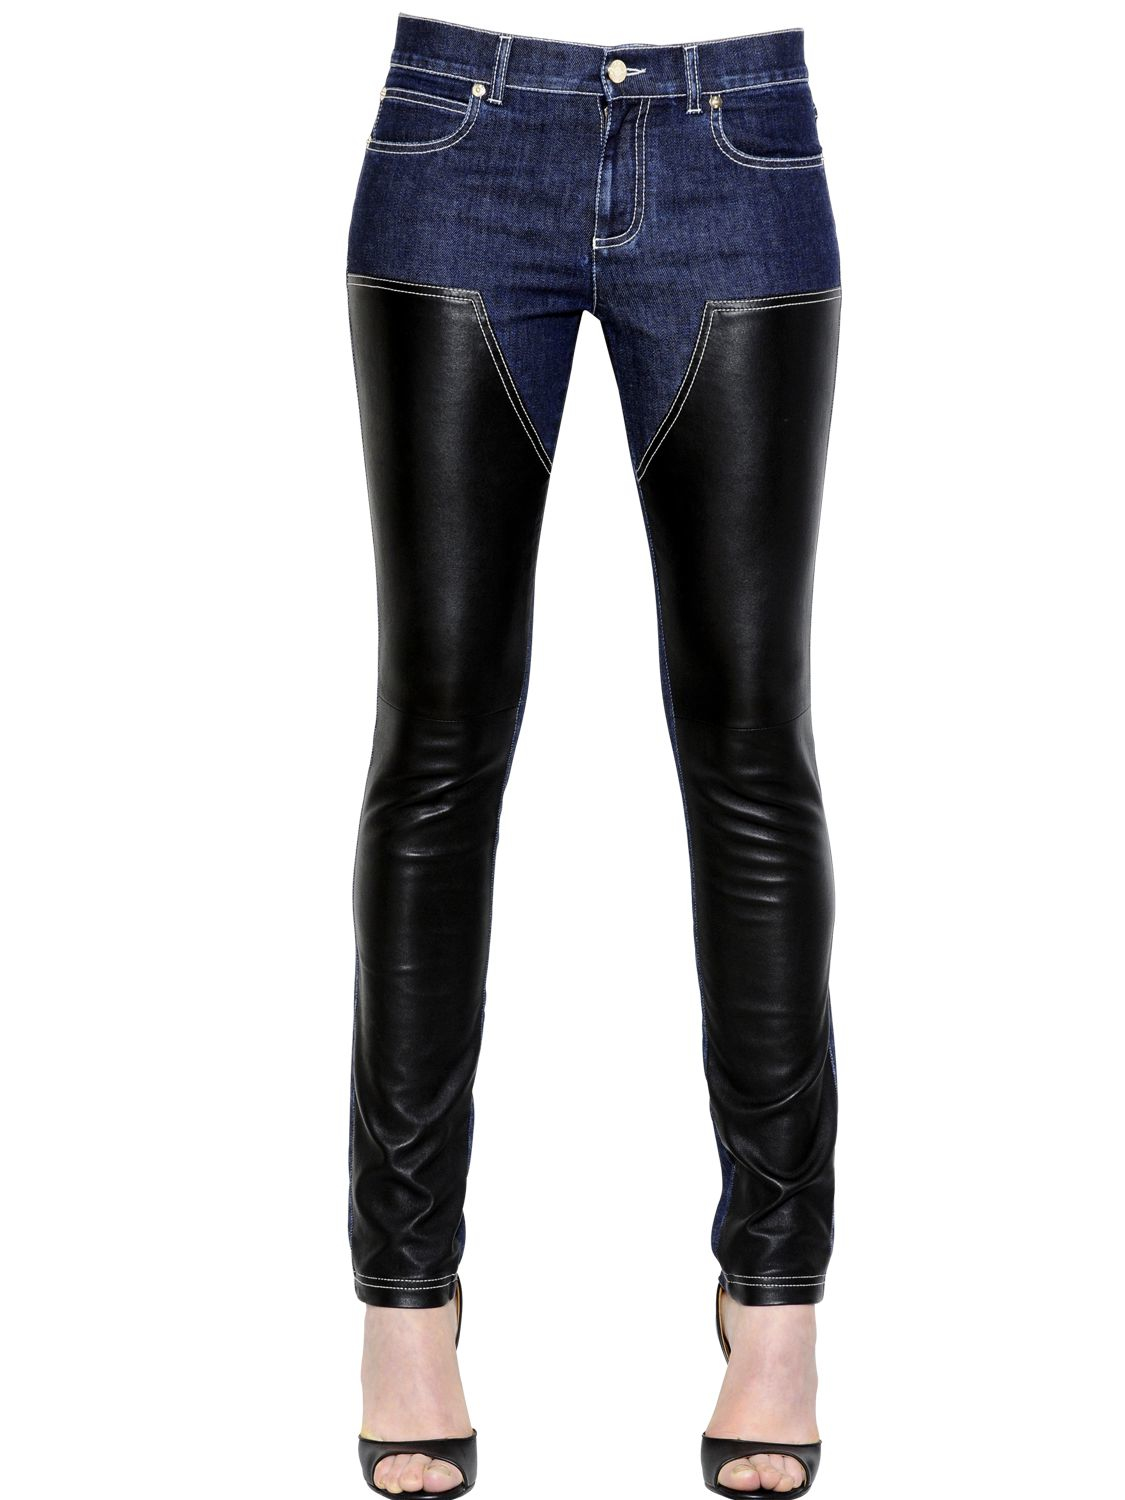 Lyst - Givenchy Cotton Denim & Nappa Leather Jeans in Blue